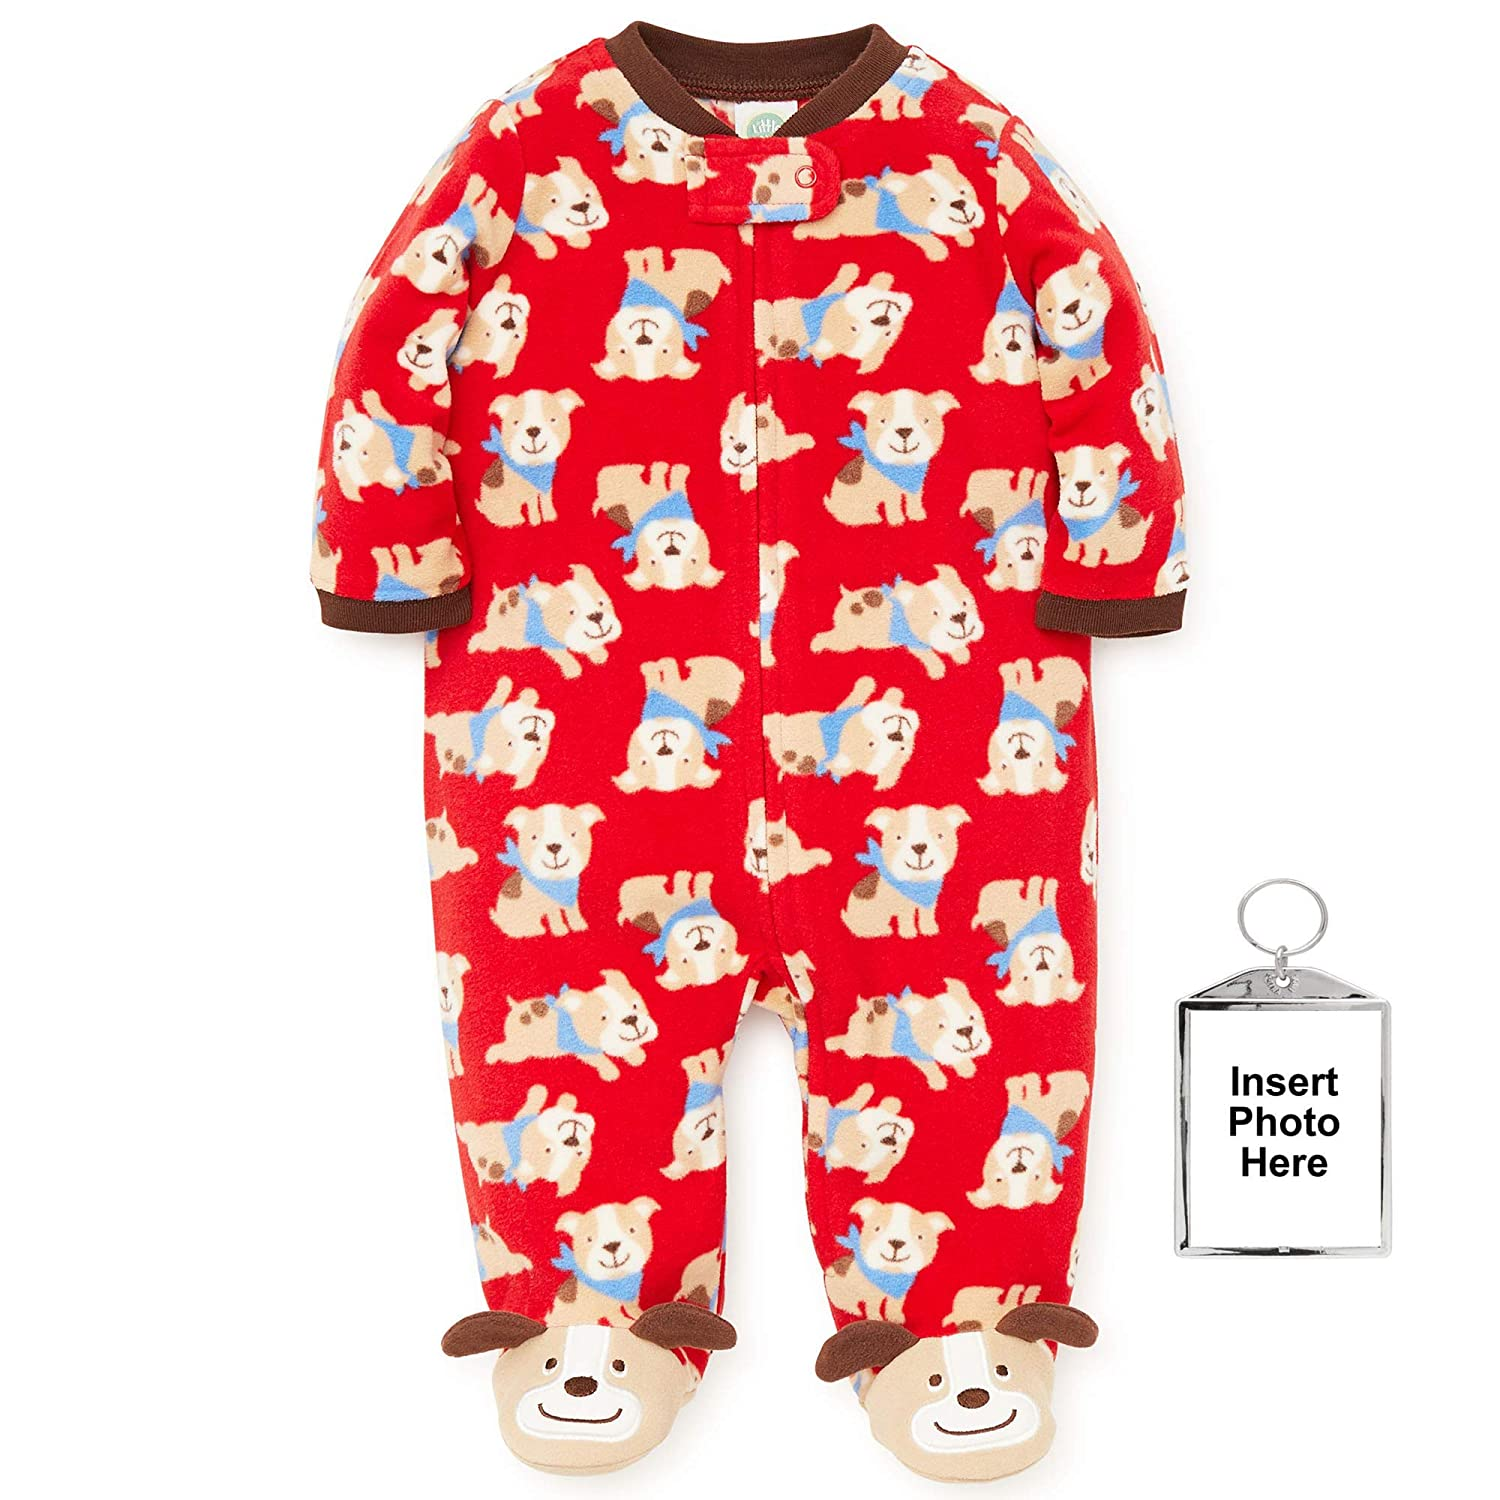 Amazon.com: Little Me Winter Fleece Baby Pajamas Footed Blanket Sleeper Footie Red Puppy Dog 24 Month: Baby